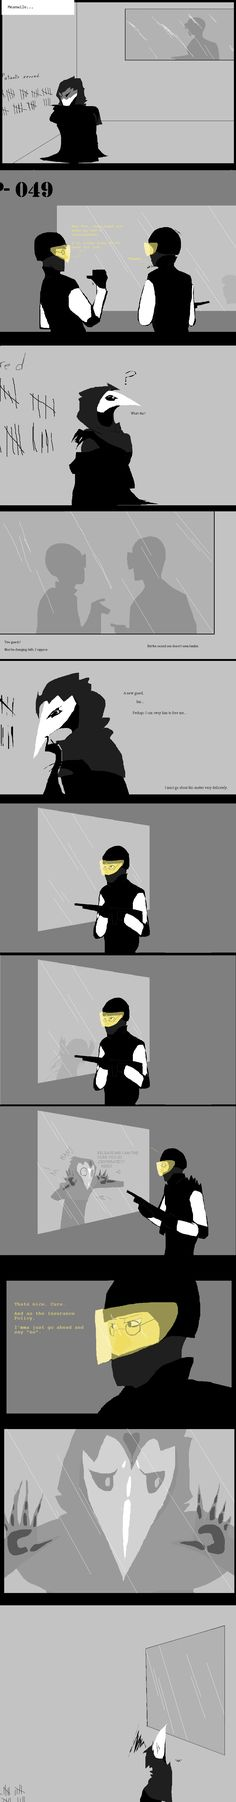 Pg Not Covered by most Insurance Policies by parenthesisgrey on DeviantArt Scp 49, Steven Universe, Villainous Cartoon, Plague Doctor, Cute Gay Couples, Creepypasta, Funny Comics, Funny Kids, Fnaf